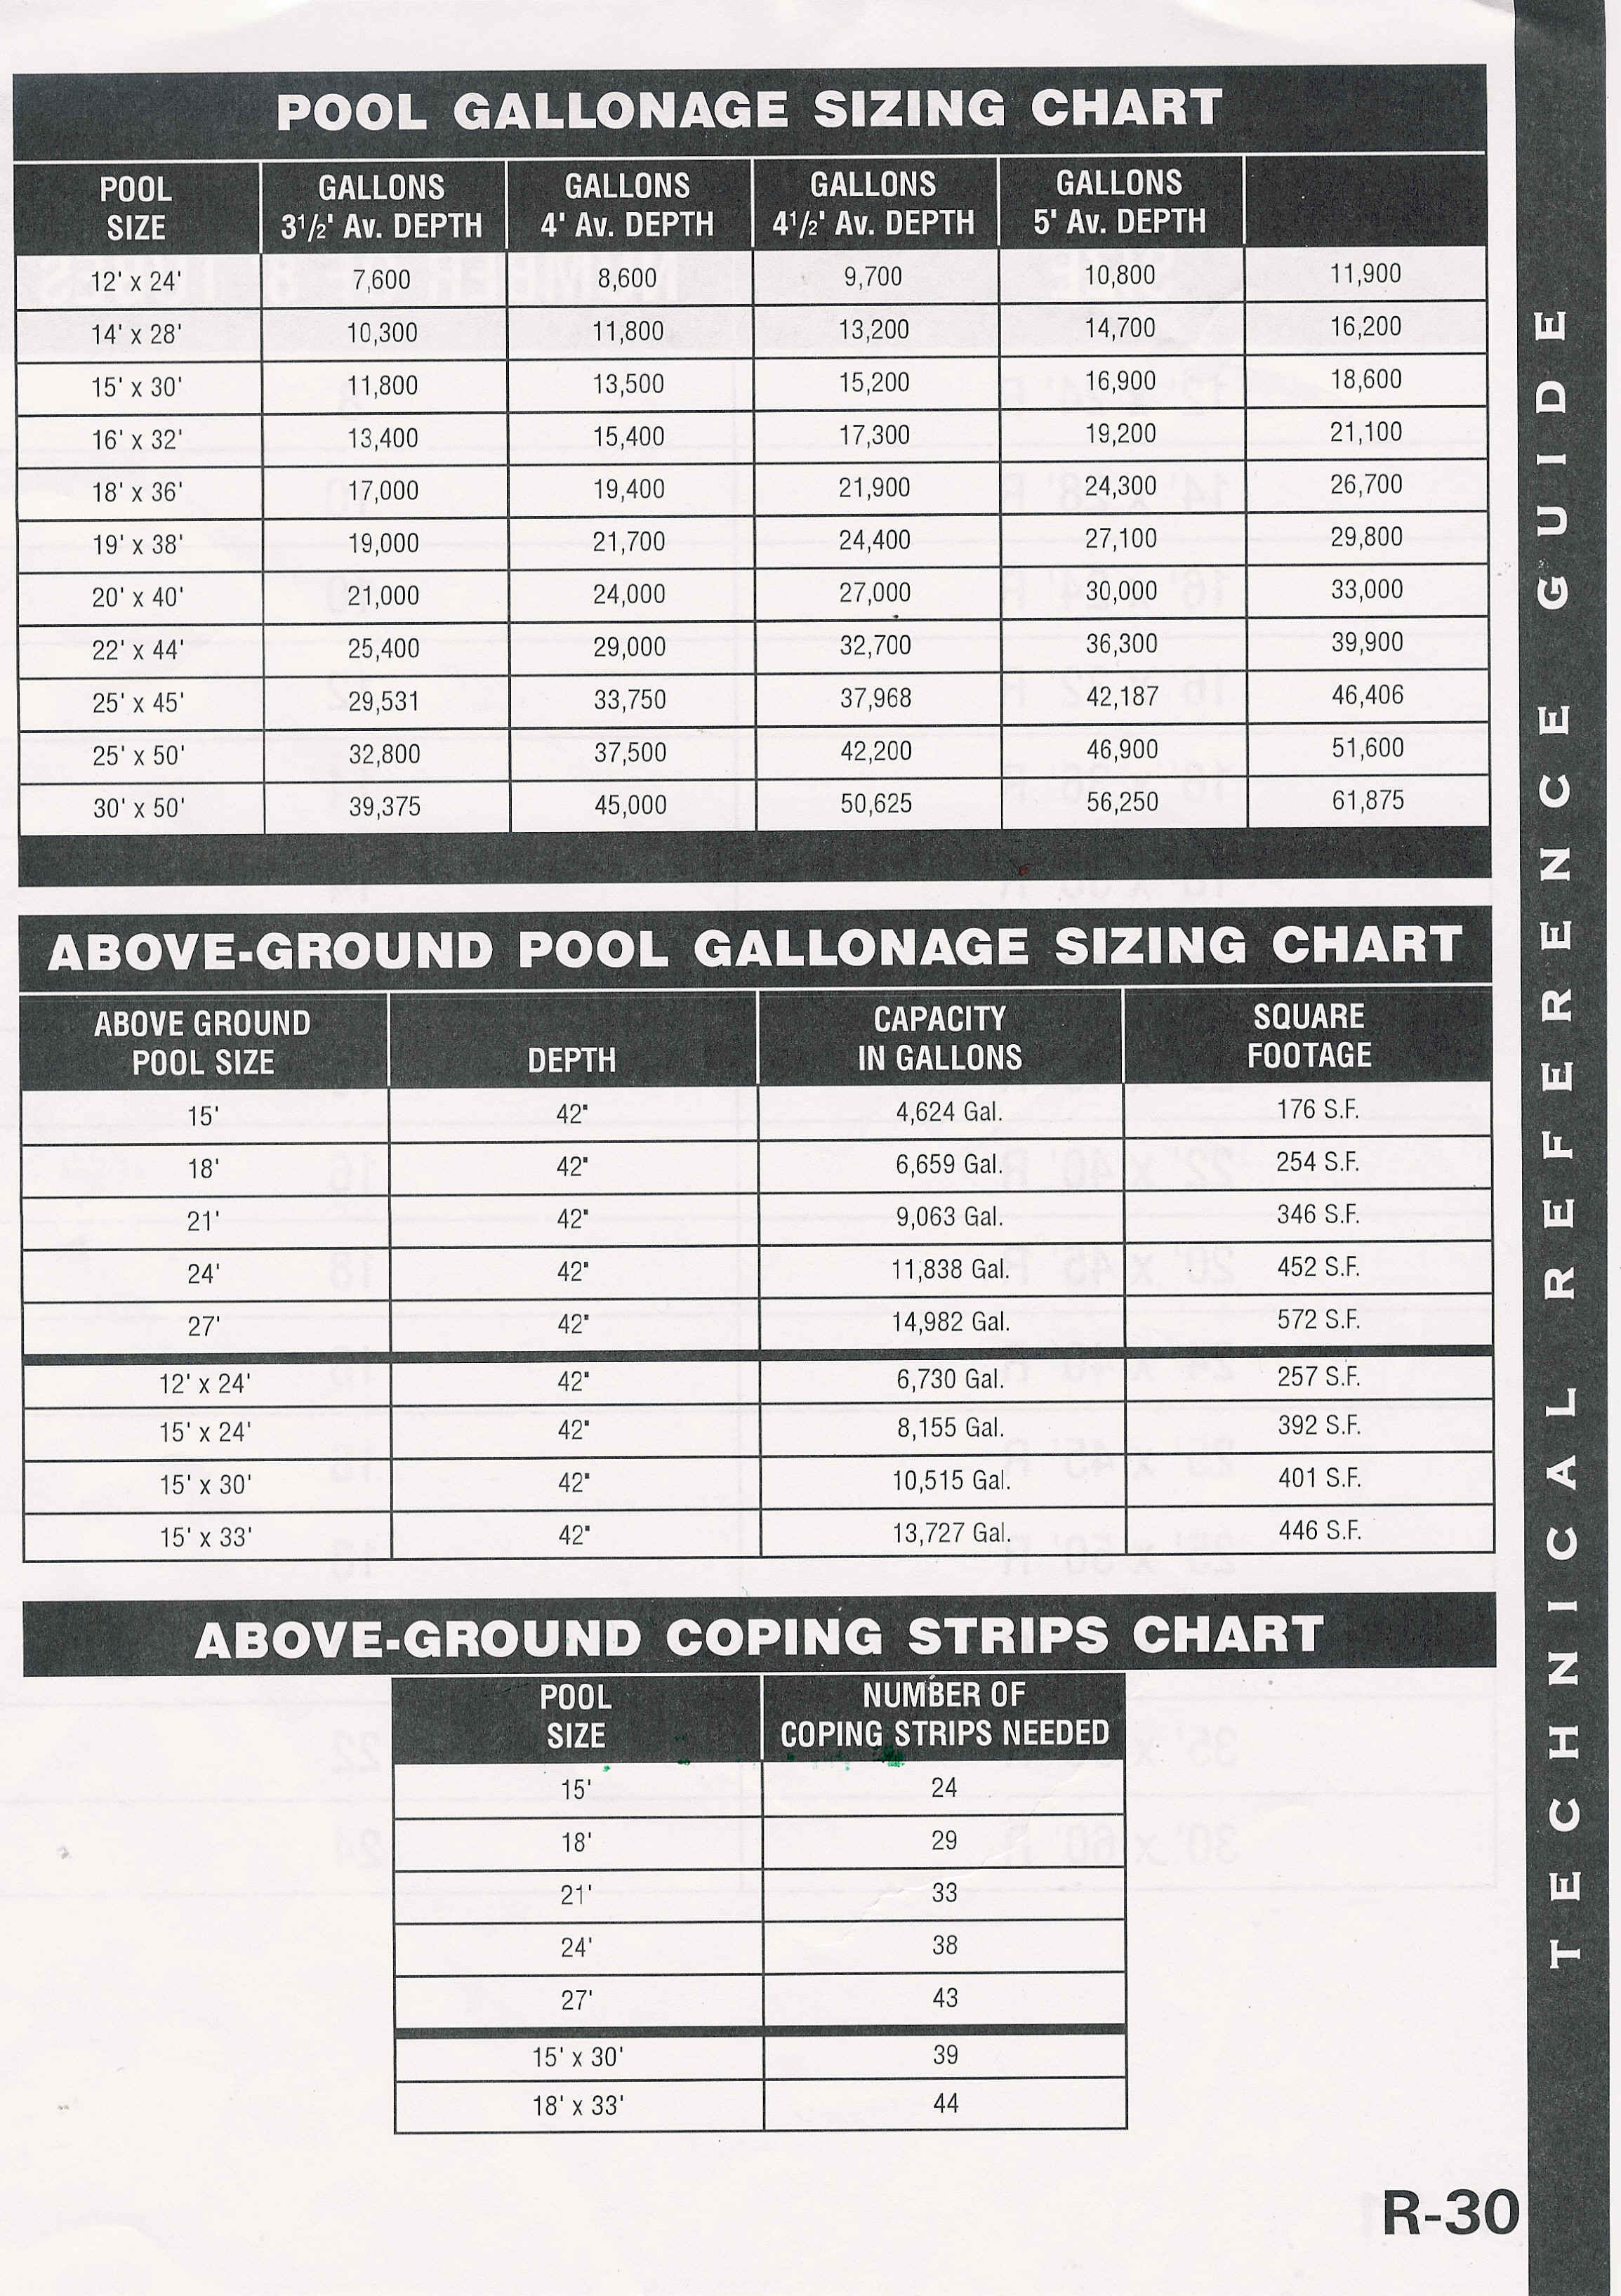 Heat Pump Diagrams Sizing Charts Hayward Super Wiring Diagram 220 Volt Pool Gallons Chart